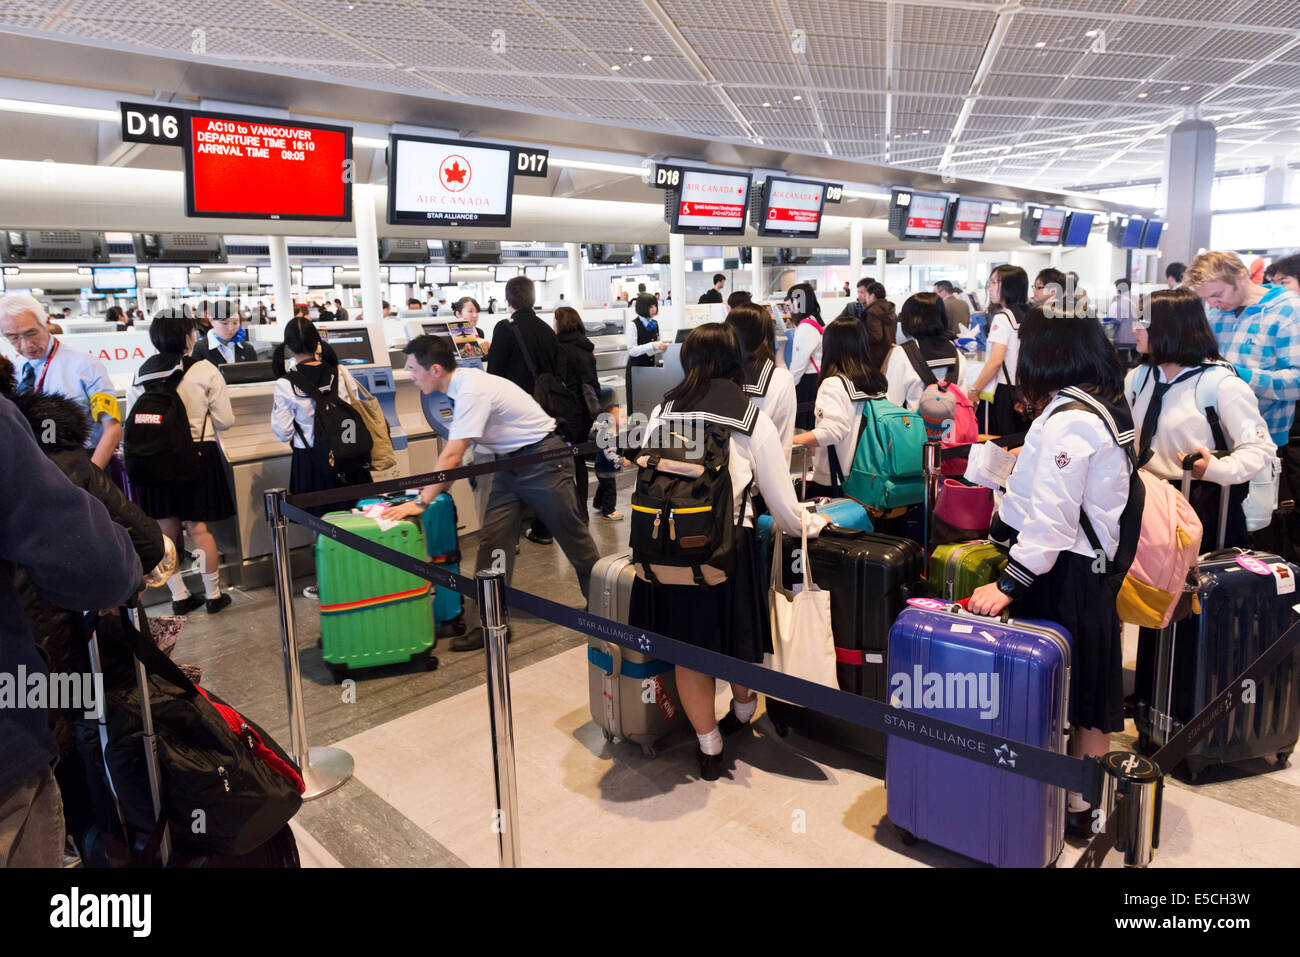 Japanese schoolgirls lined up at Air Canada check-in counter of Narita International Airport in Japan - Stock Image